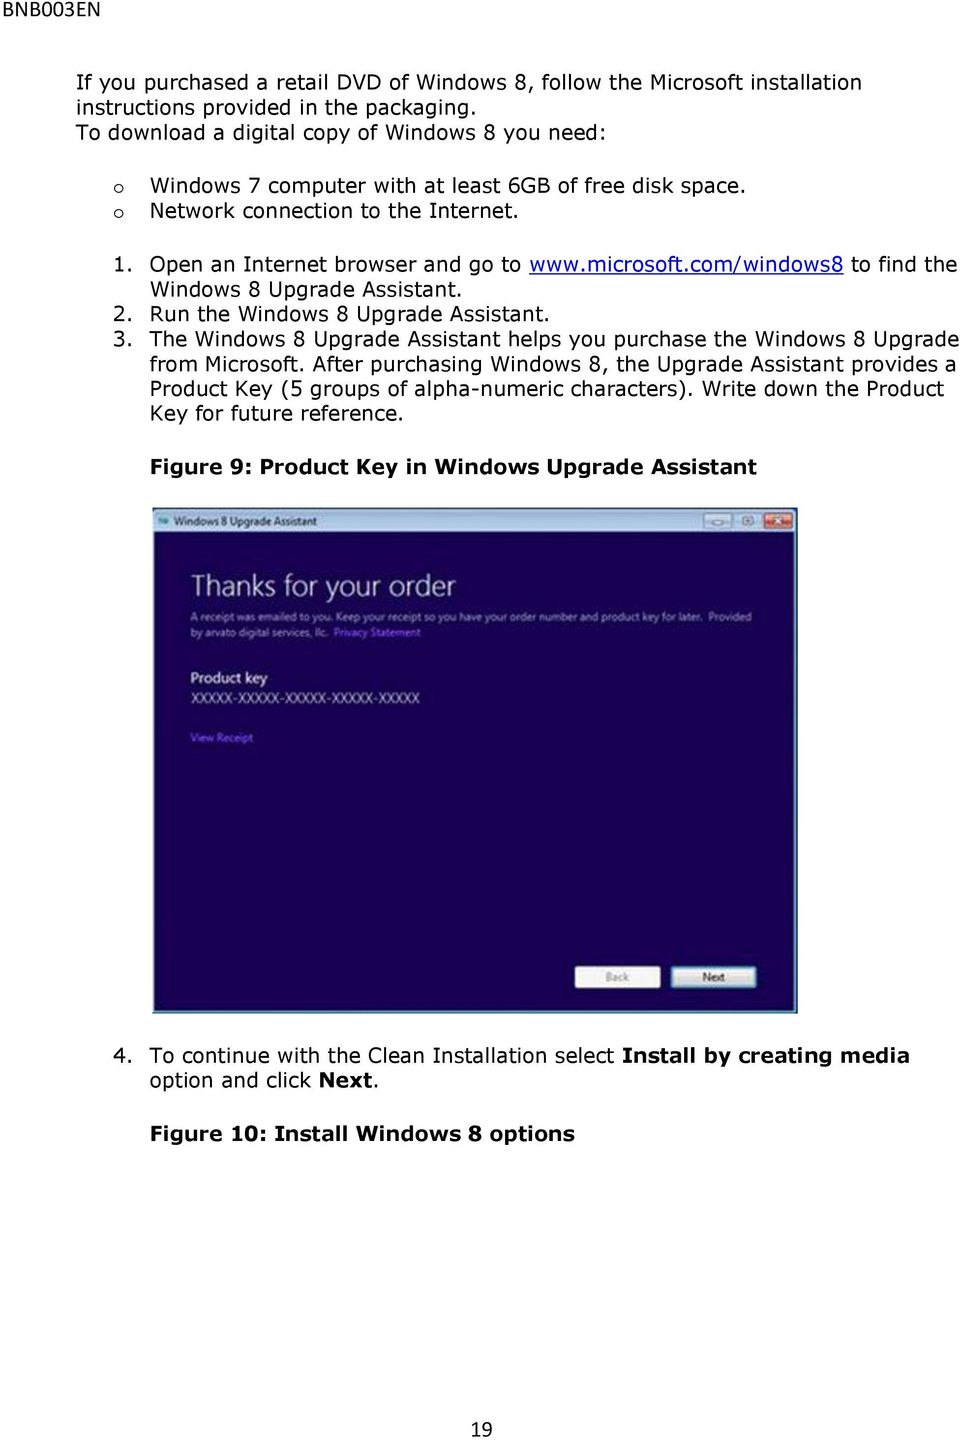 com/windows8 to find the Windows 8 Upgrade Assistant. 2. Run the Windows 8 Upgrade Assistant. 3. The Windows 8 Upgrade Assistant helps you purchase the Windows 8 Upgrade from Microsoft.